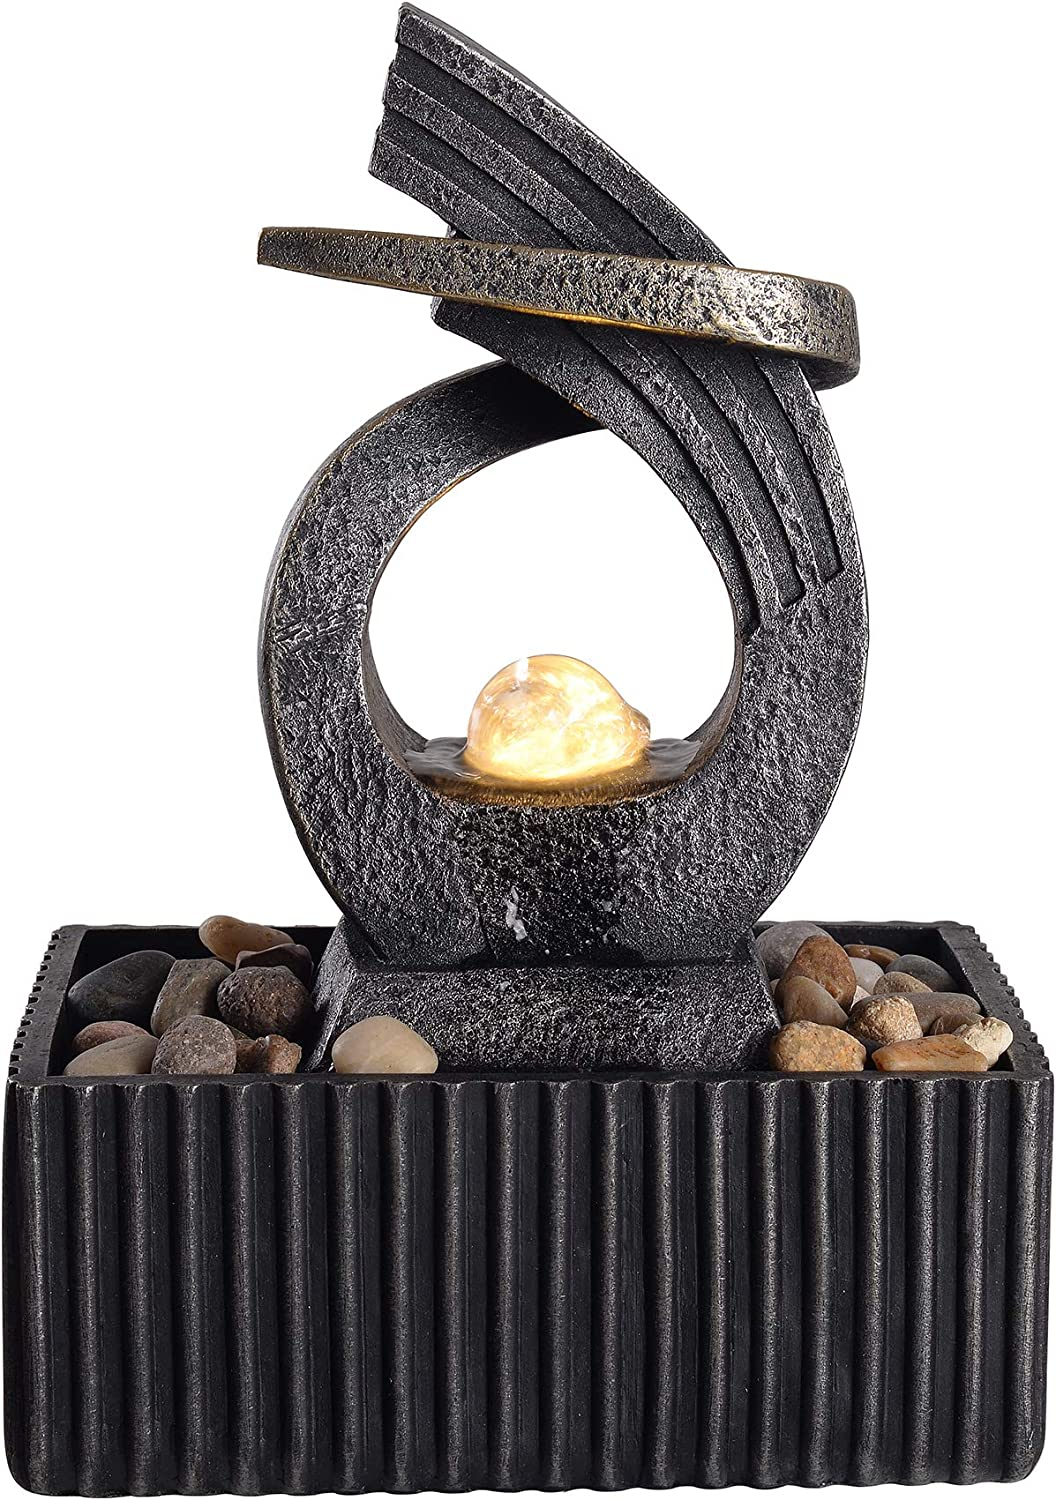 """Peaktop PT-TF0002 Indoor and Outdoor Feng Shui Water Zen Décor Relaxation Desktop and Tabletop Fountain with LED Light for Bedroom Living Room Home Office, 8.3"""" Height, Charcoal/Bronze"""